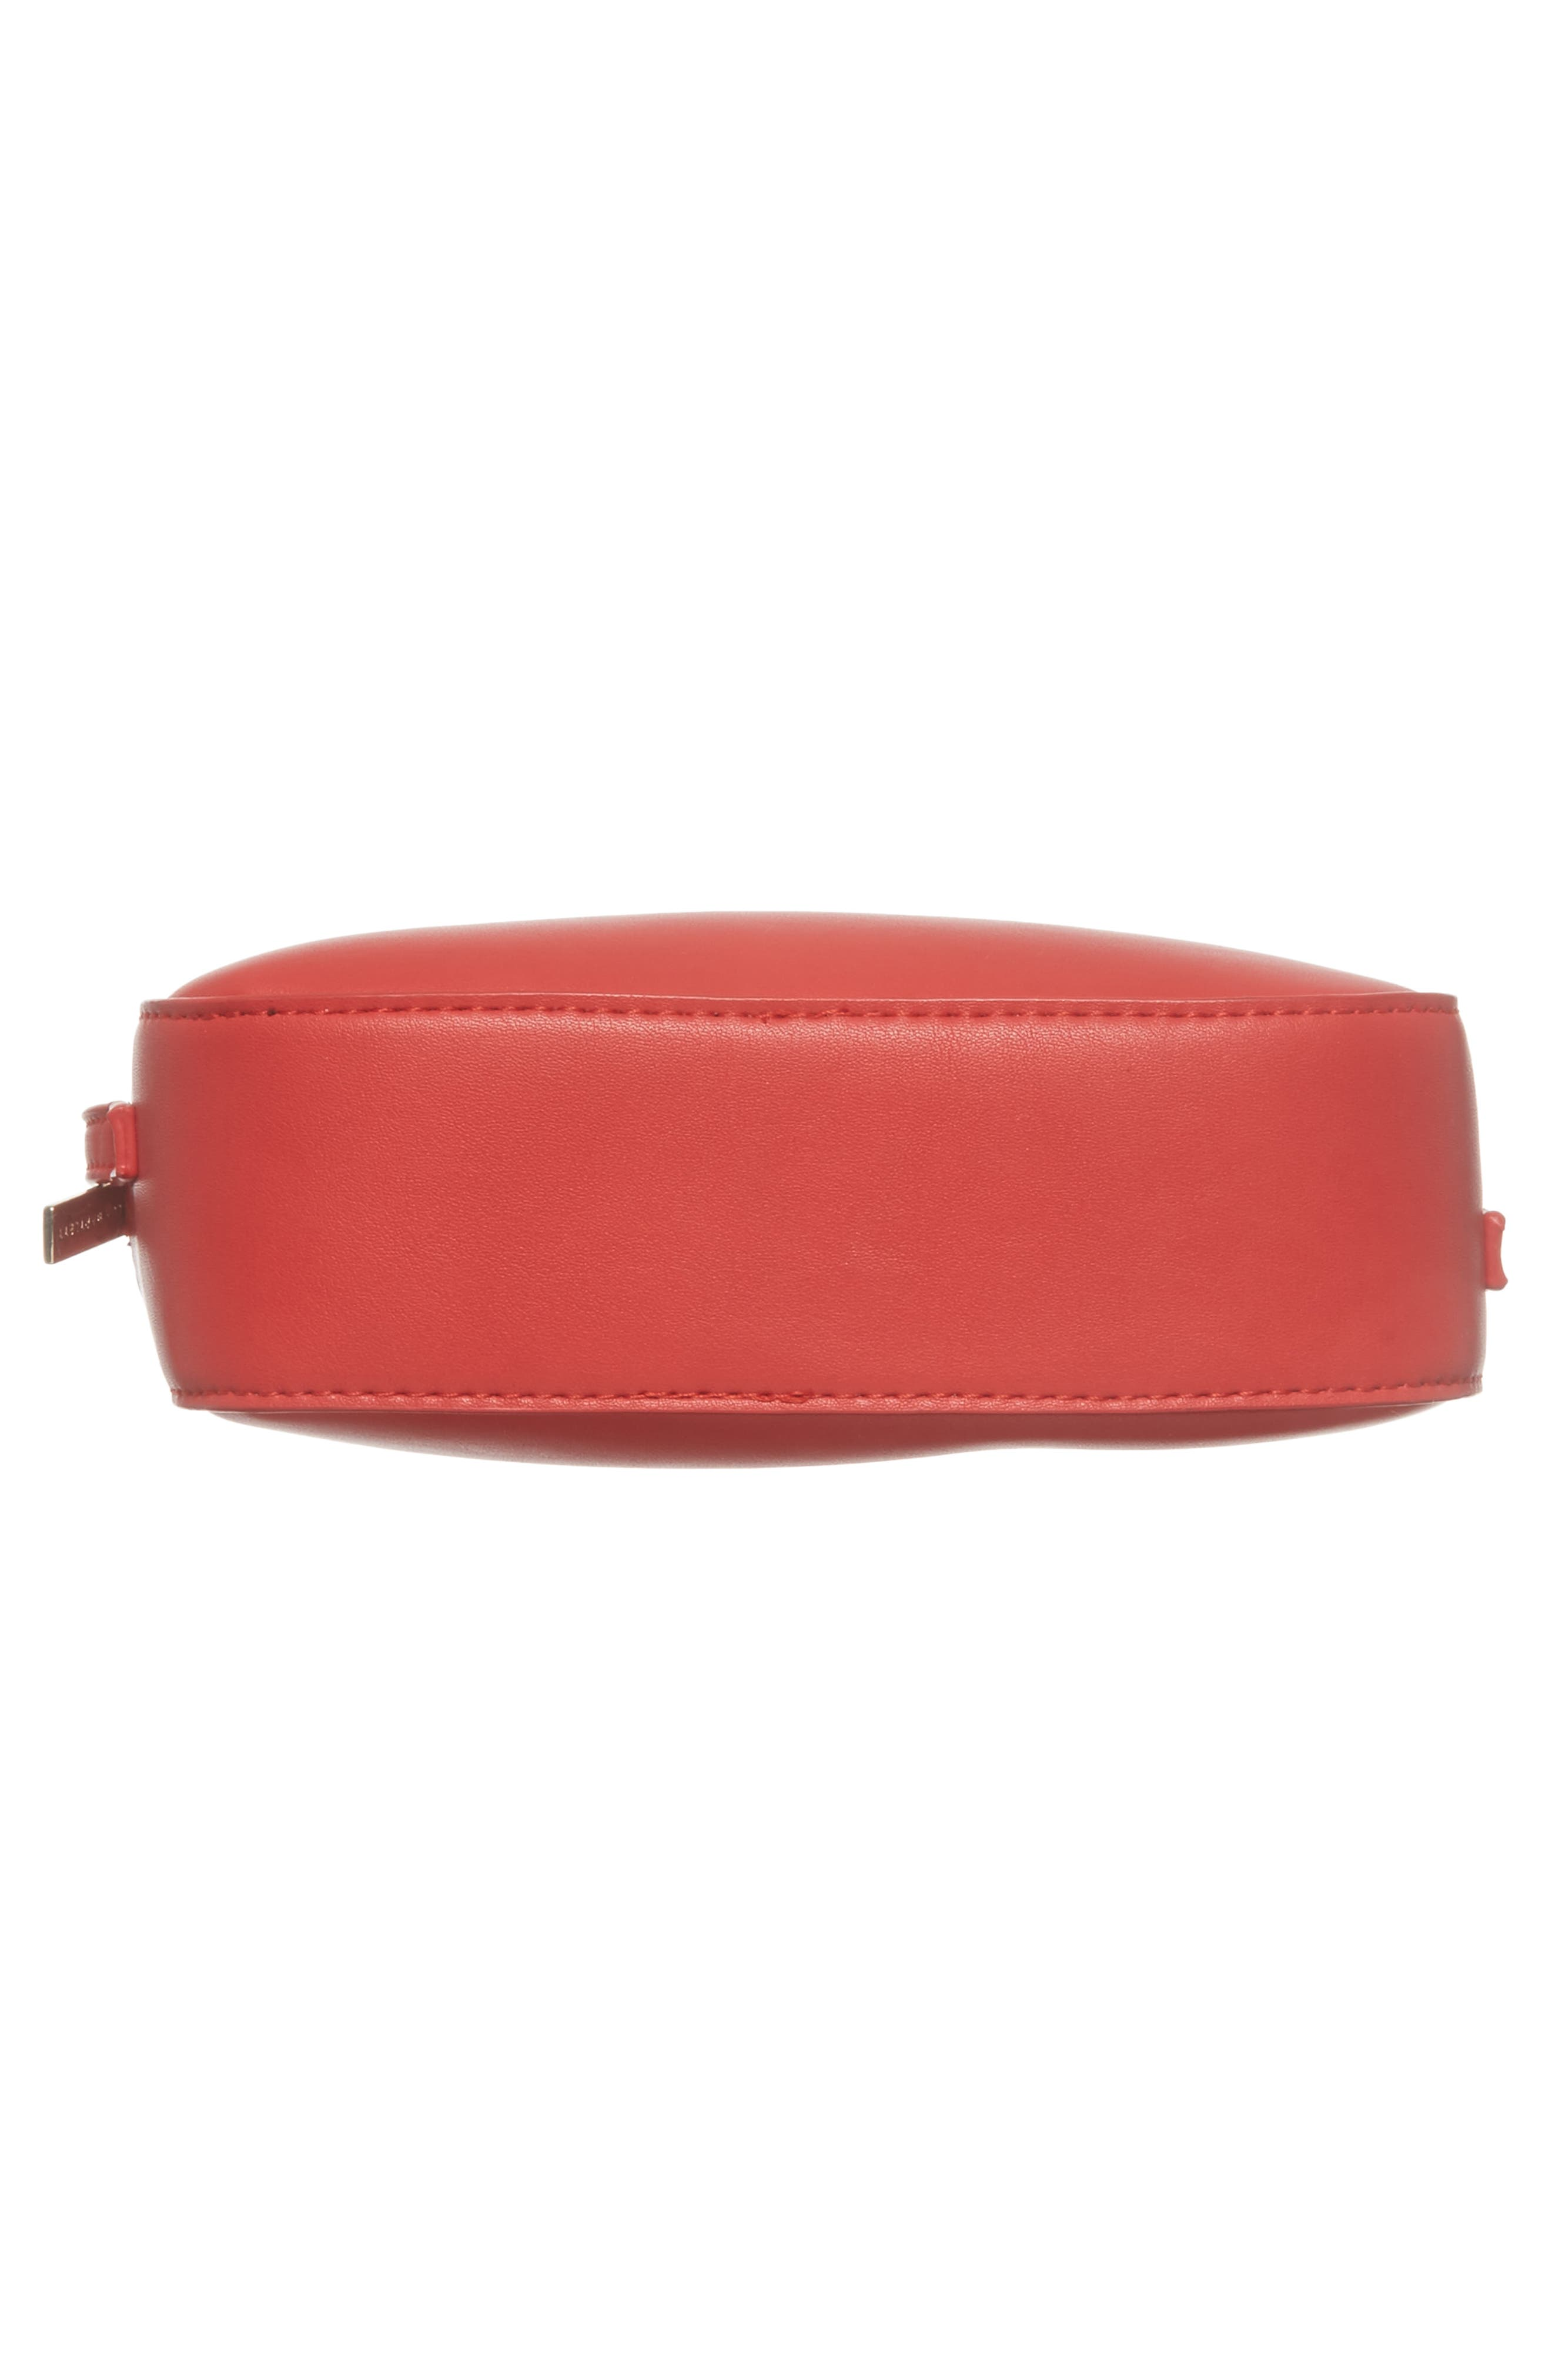 Faux Leather Box Bag,                             Alternate thumbnail 6, color,                             Red